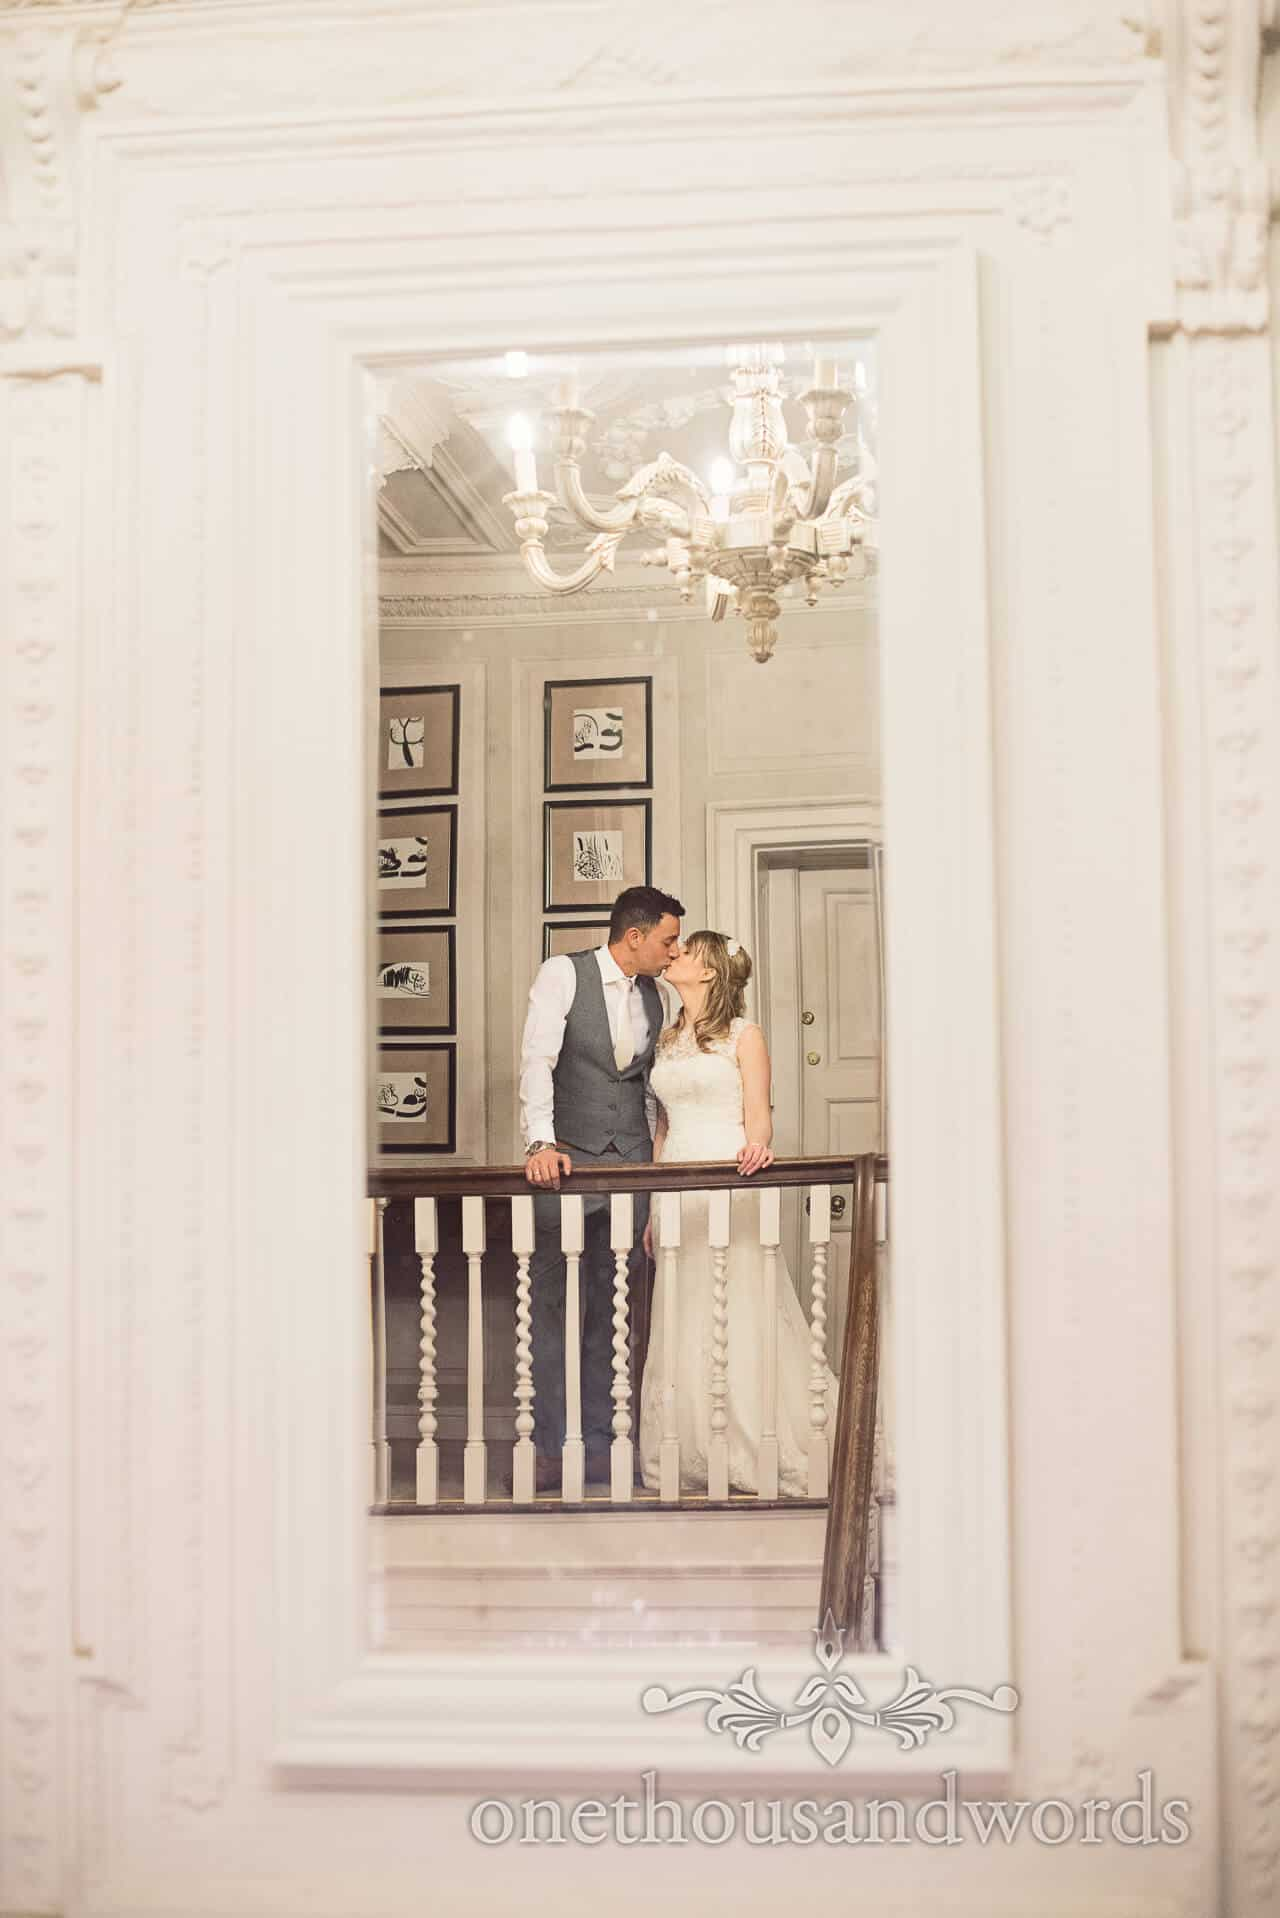 Bride and Groom in mirror Wedding photograph